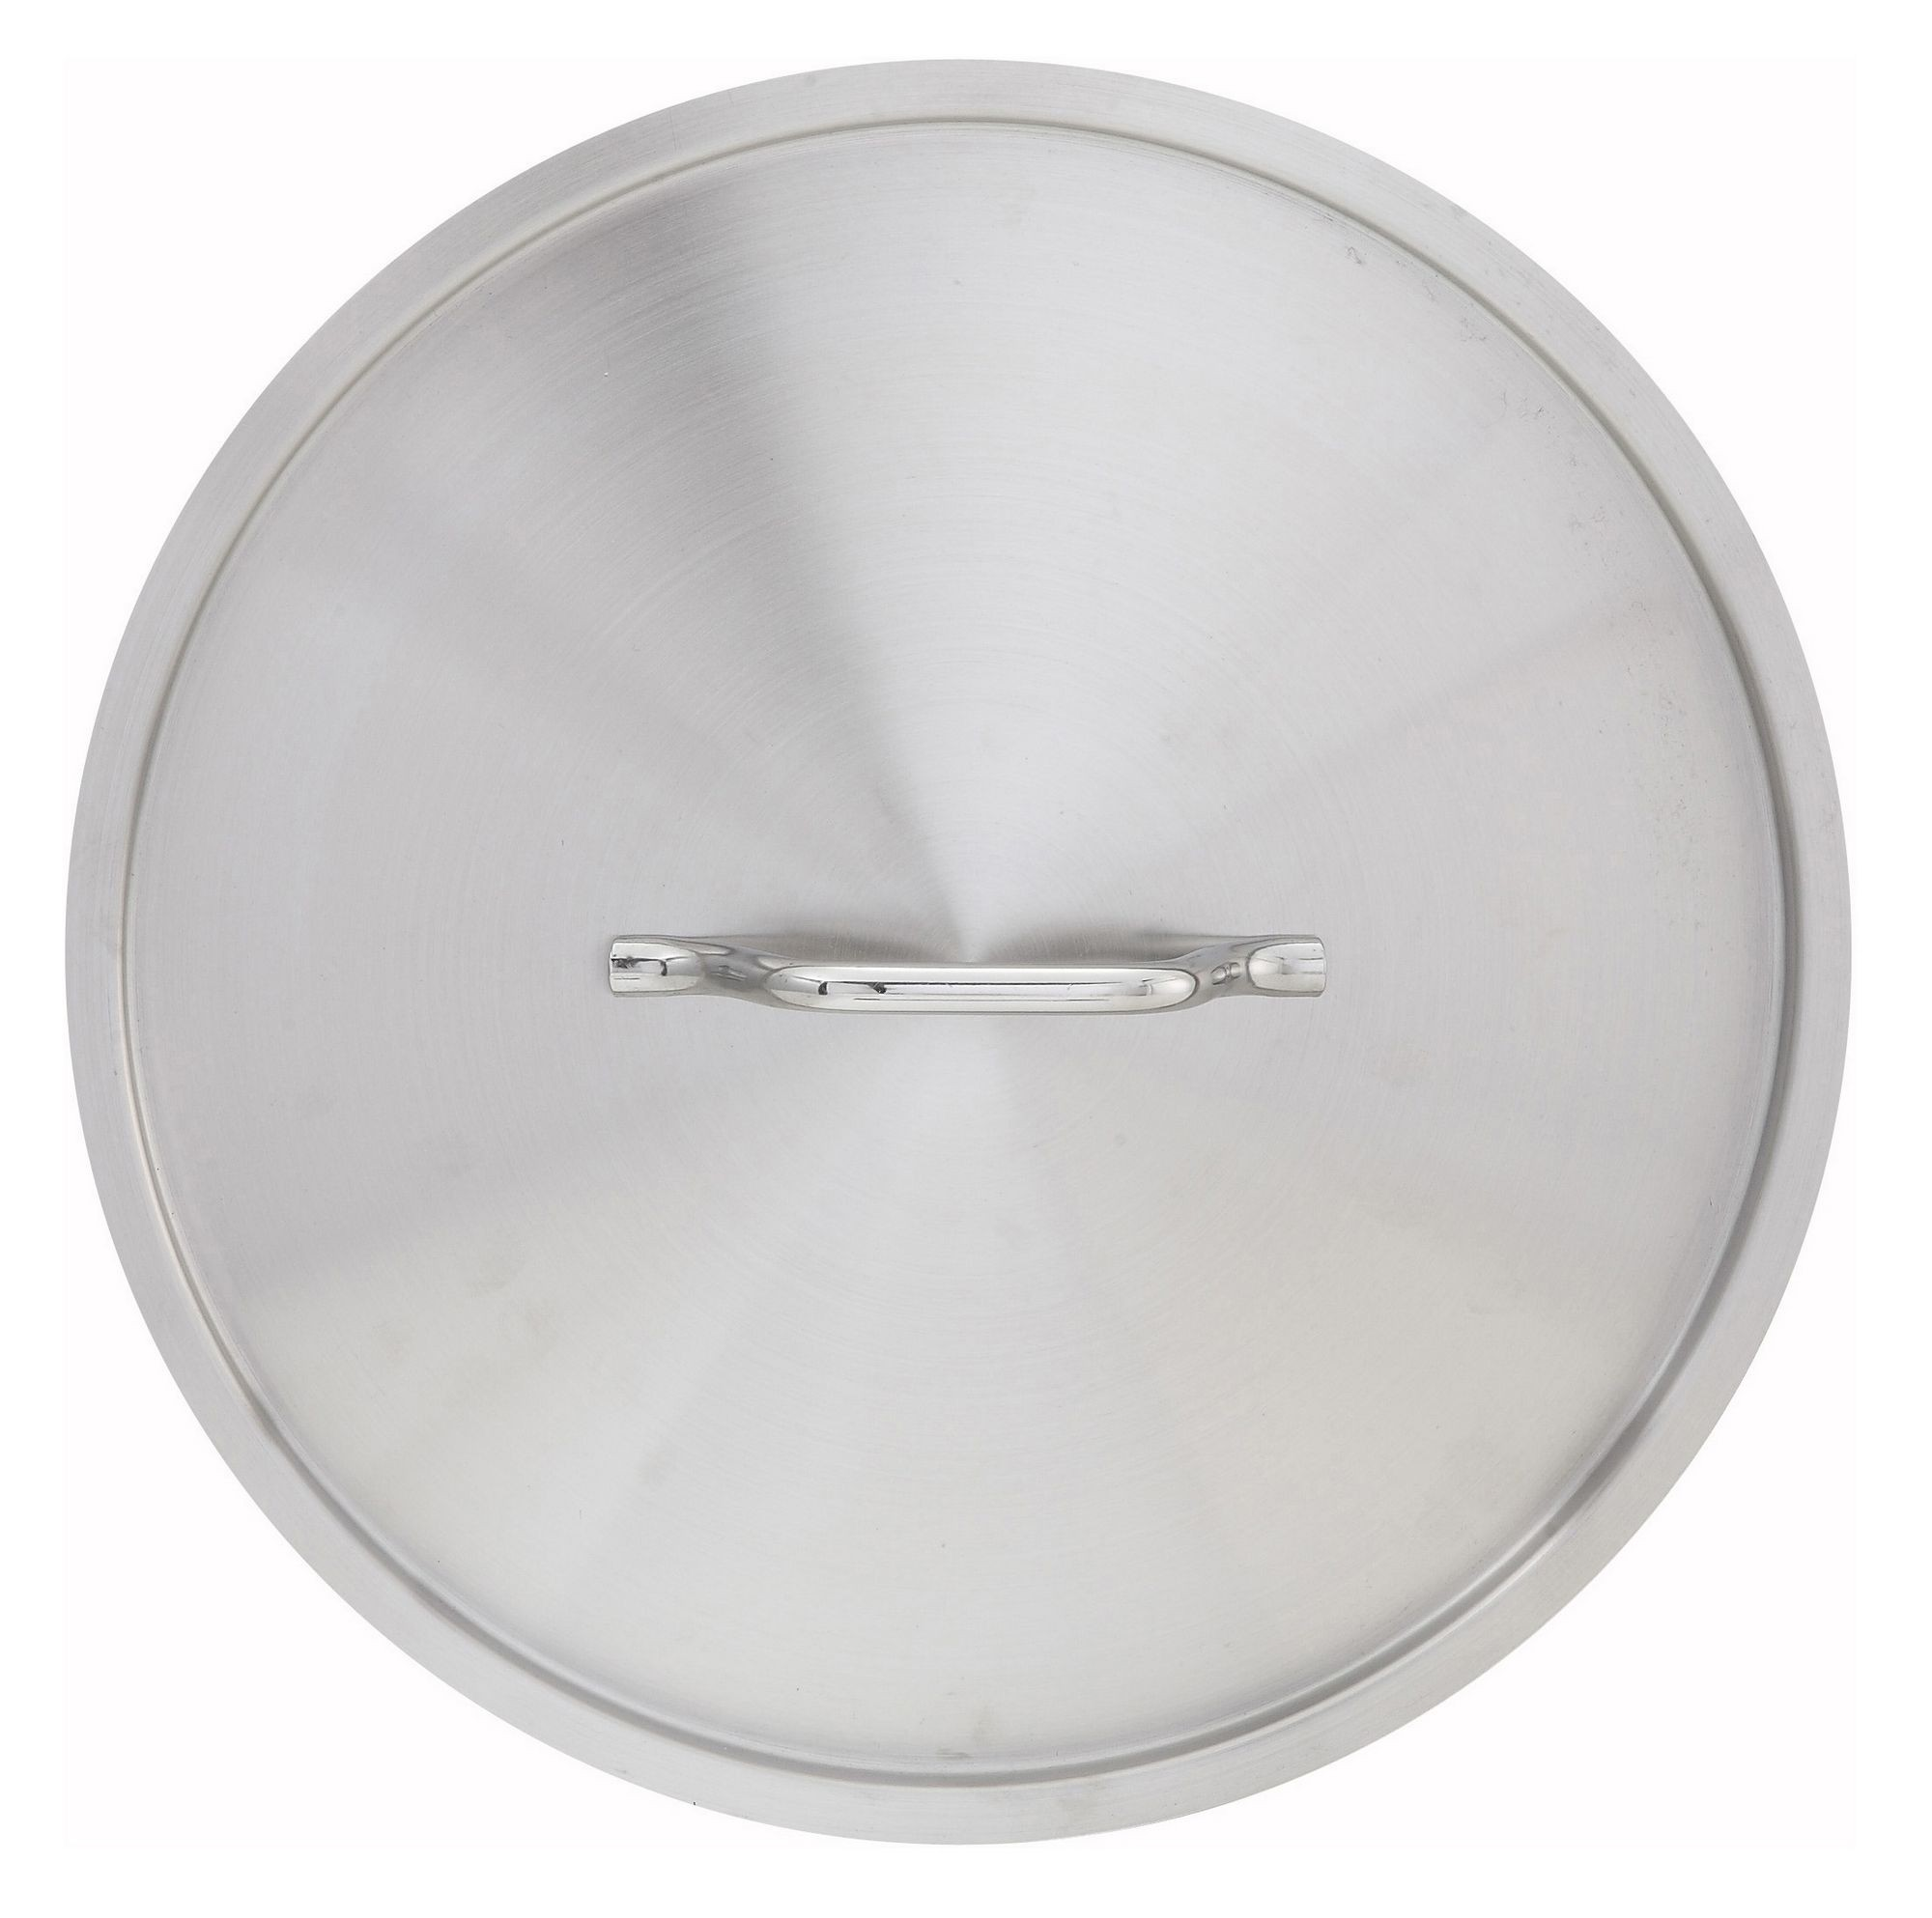 Stainless Steel Fry Pan Cover For SSFP-12 SSFP-12NS